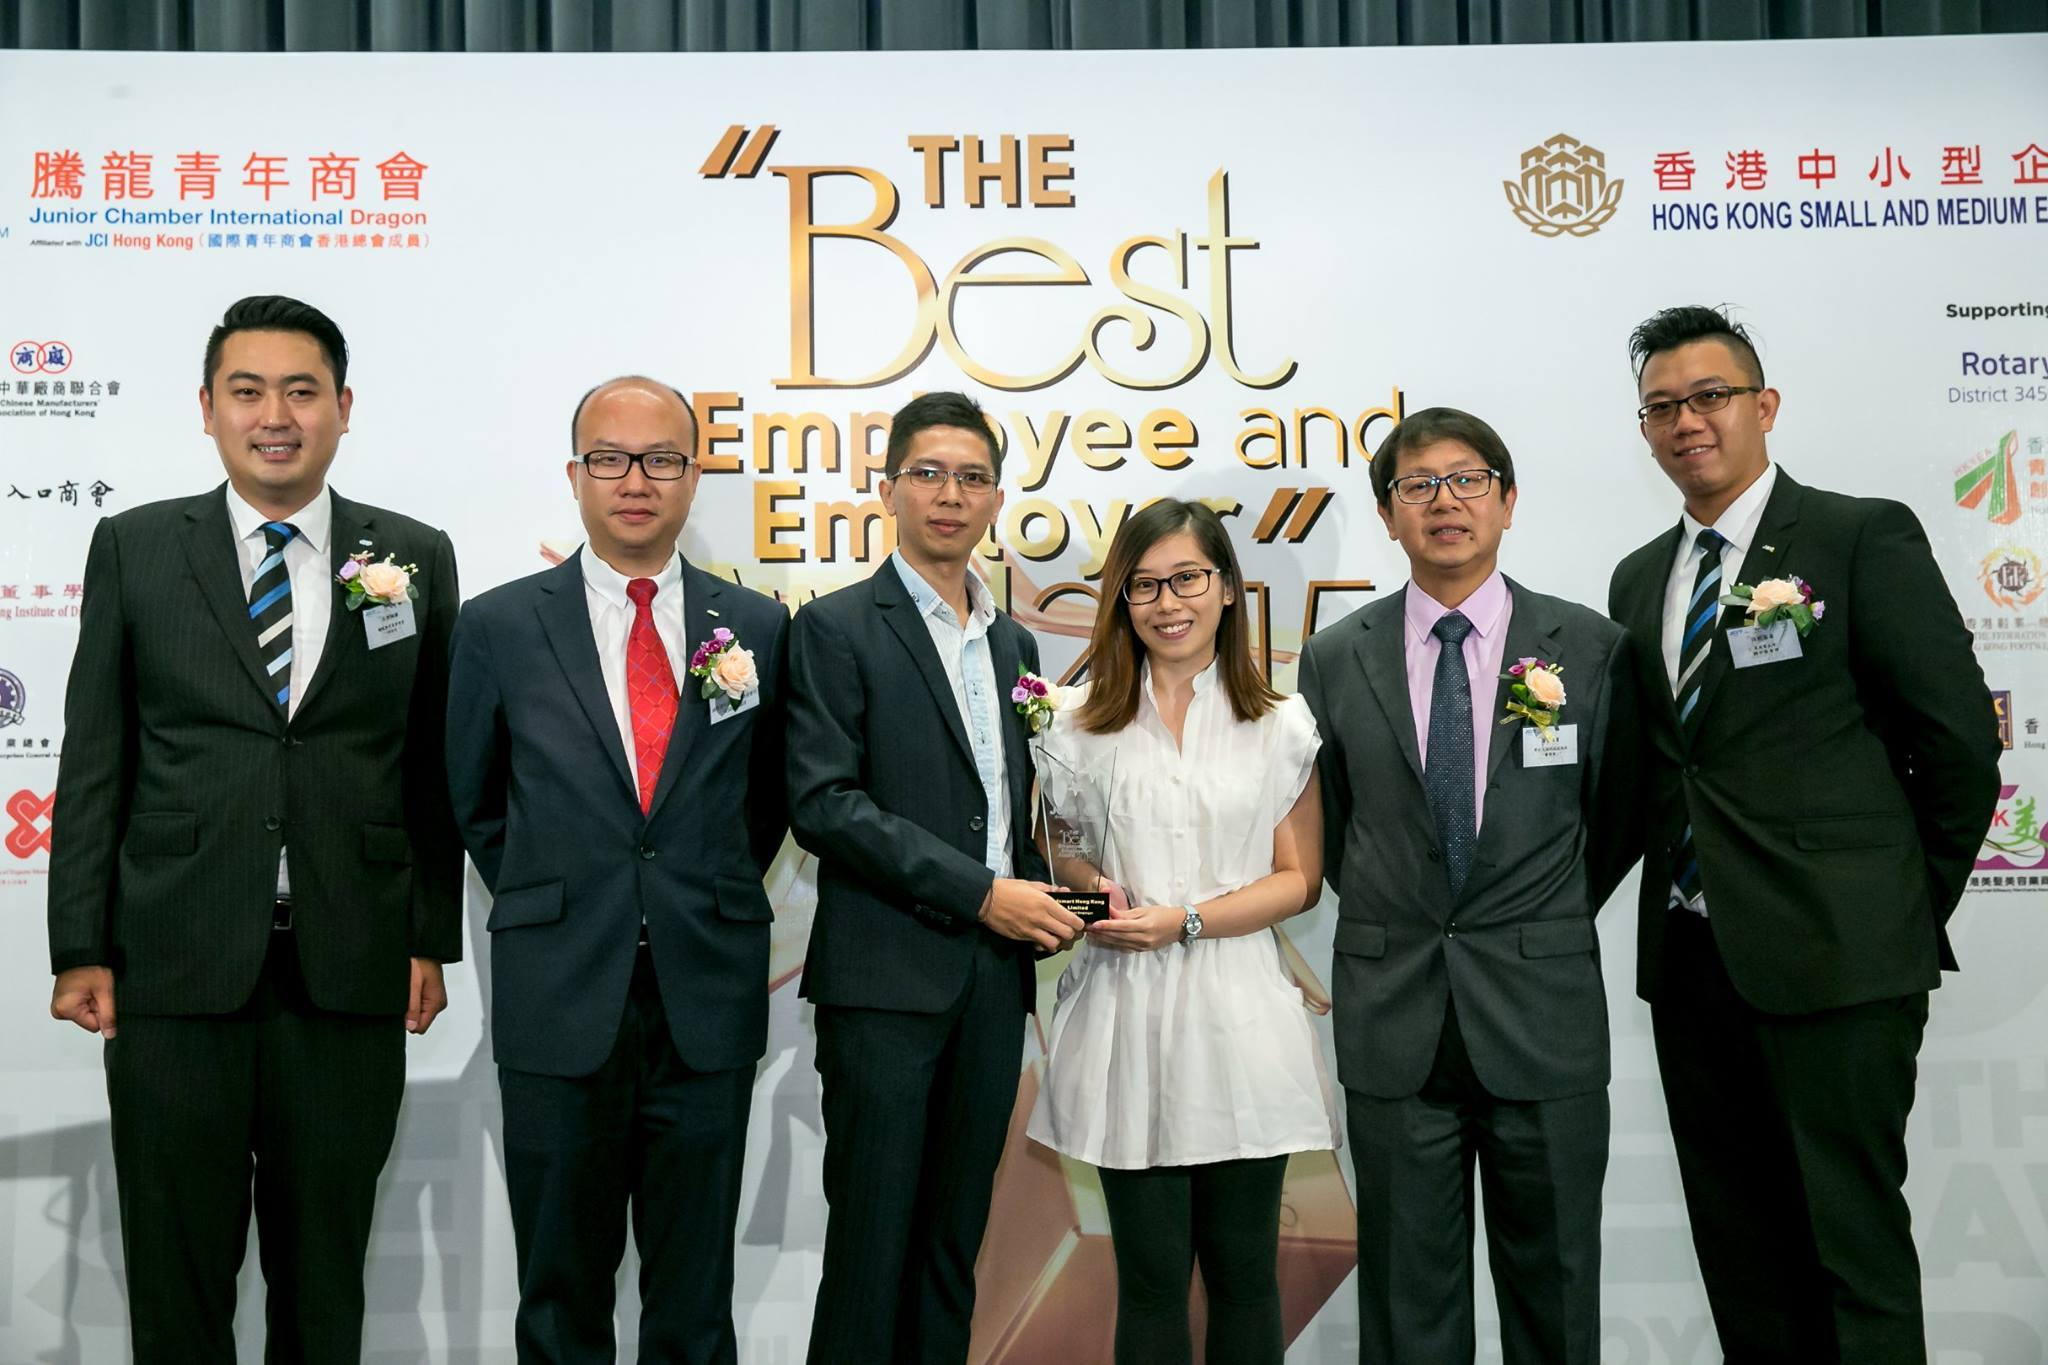 The Best Employee and Employer Award 2015-03